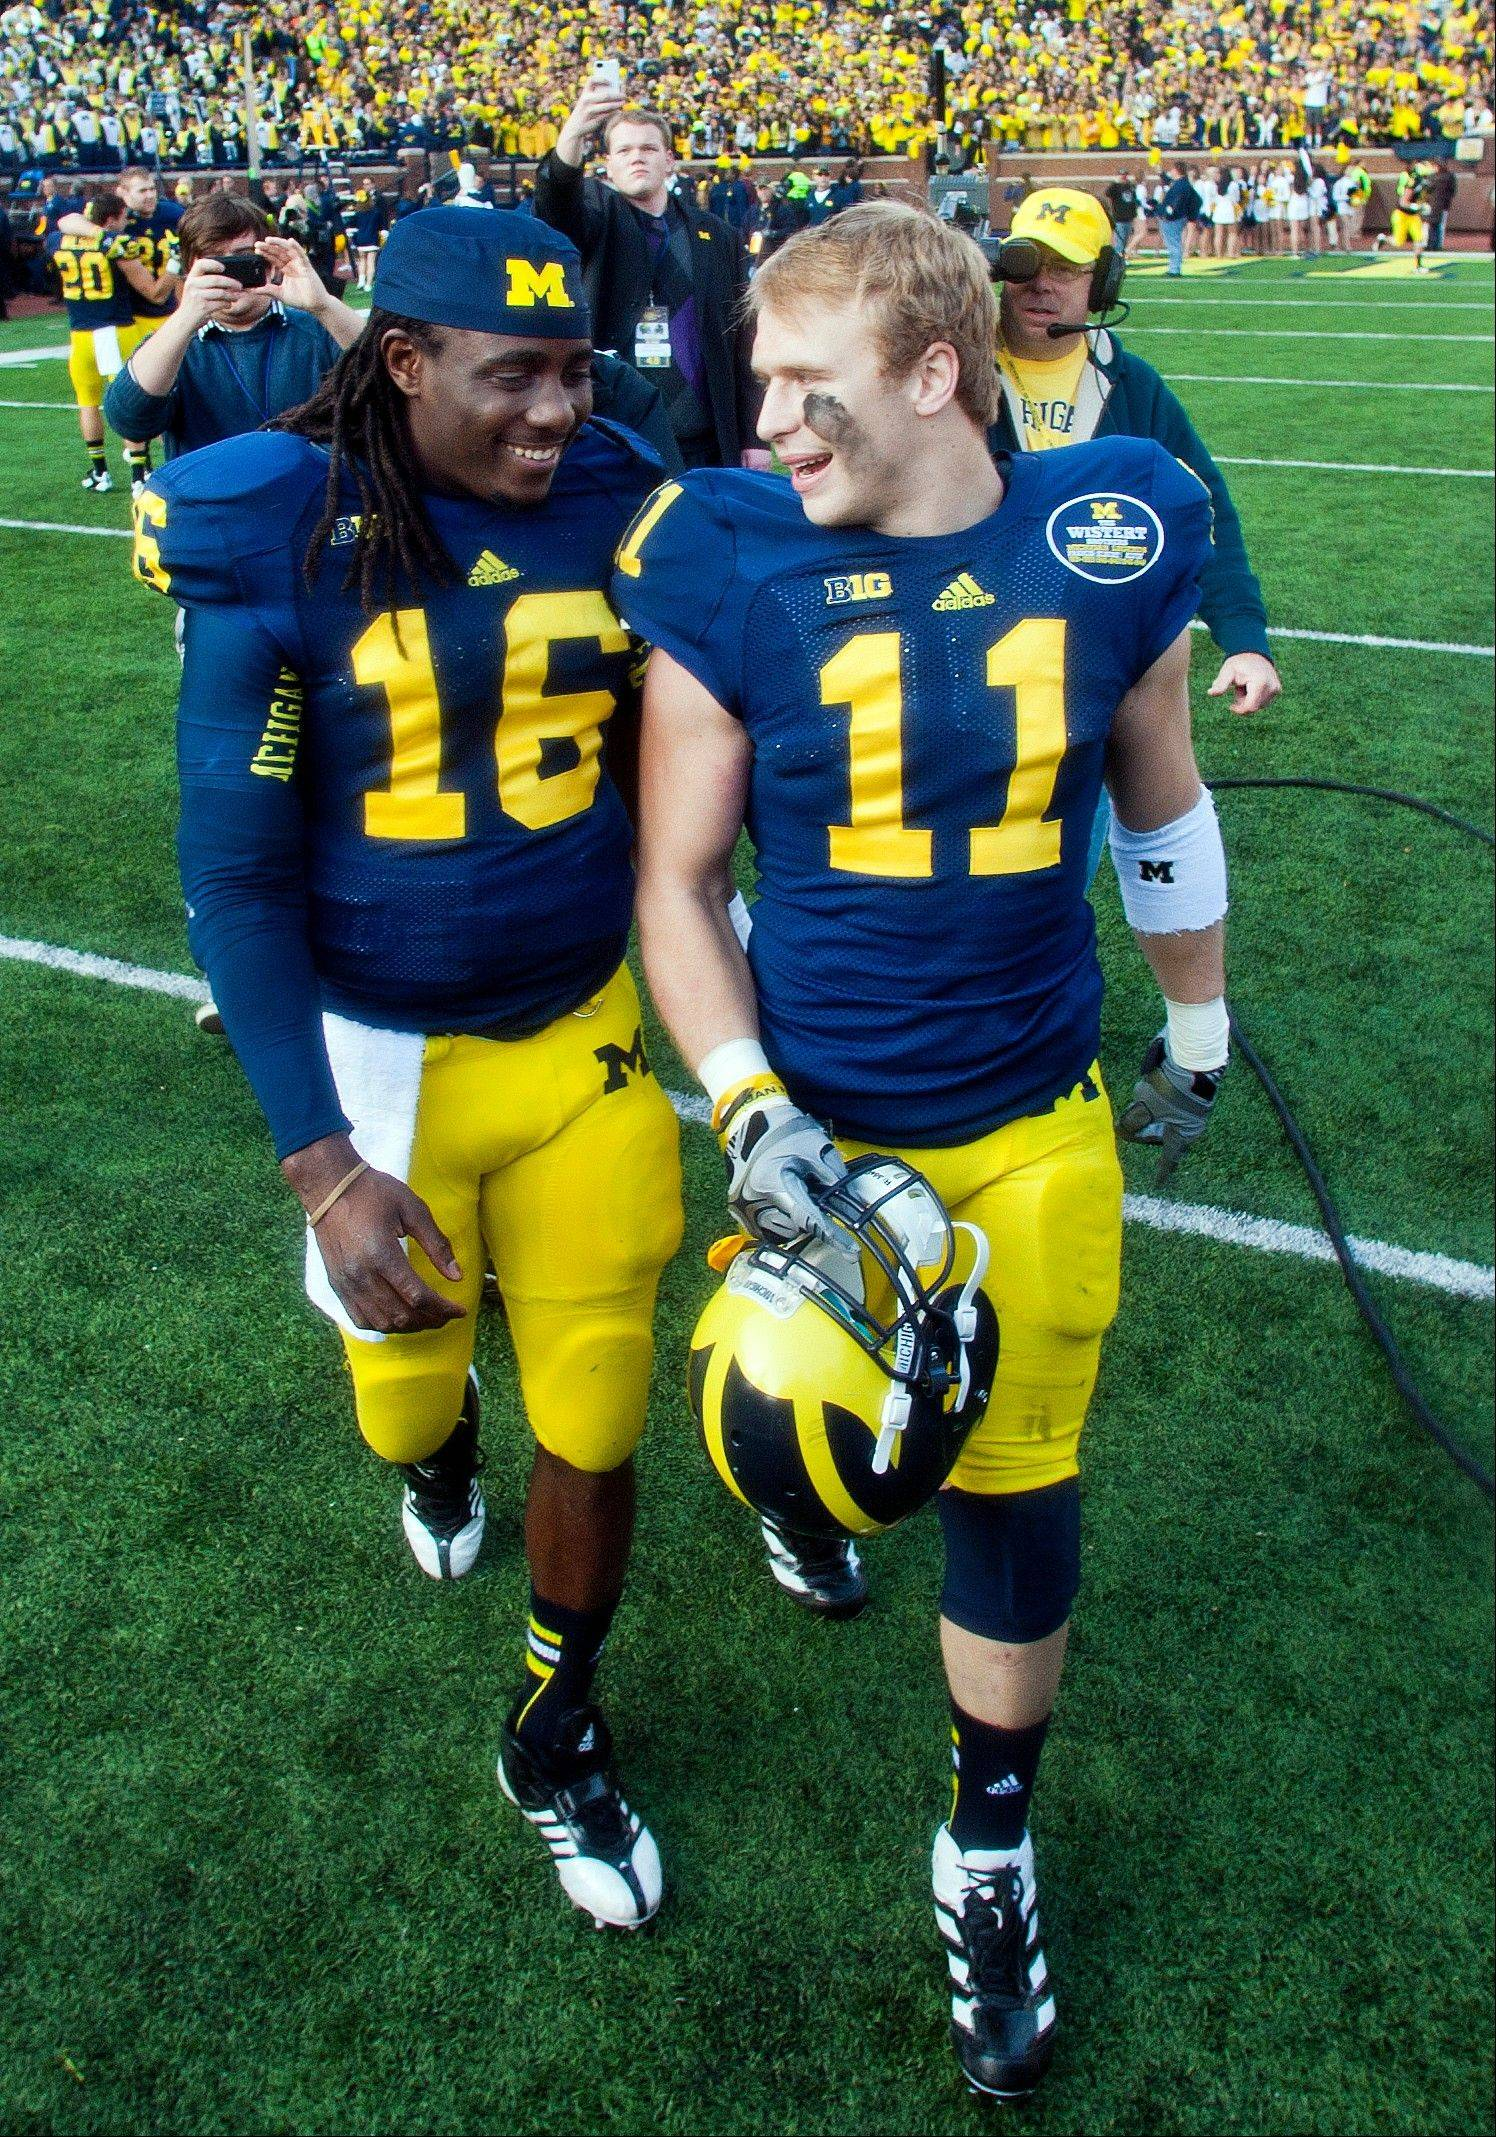 Michigan co-captains quarterback Denard Robinson (16) and safety Jordan Kovacs (11) walk off the field after playing their final home game in an NCAA college football game against Iowa, Saturday, Nov. 17, 2012, in Ann Arbor, Mich. Michigan won 42-17. (AP Photo/Tony Ding)